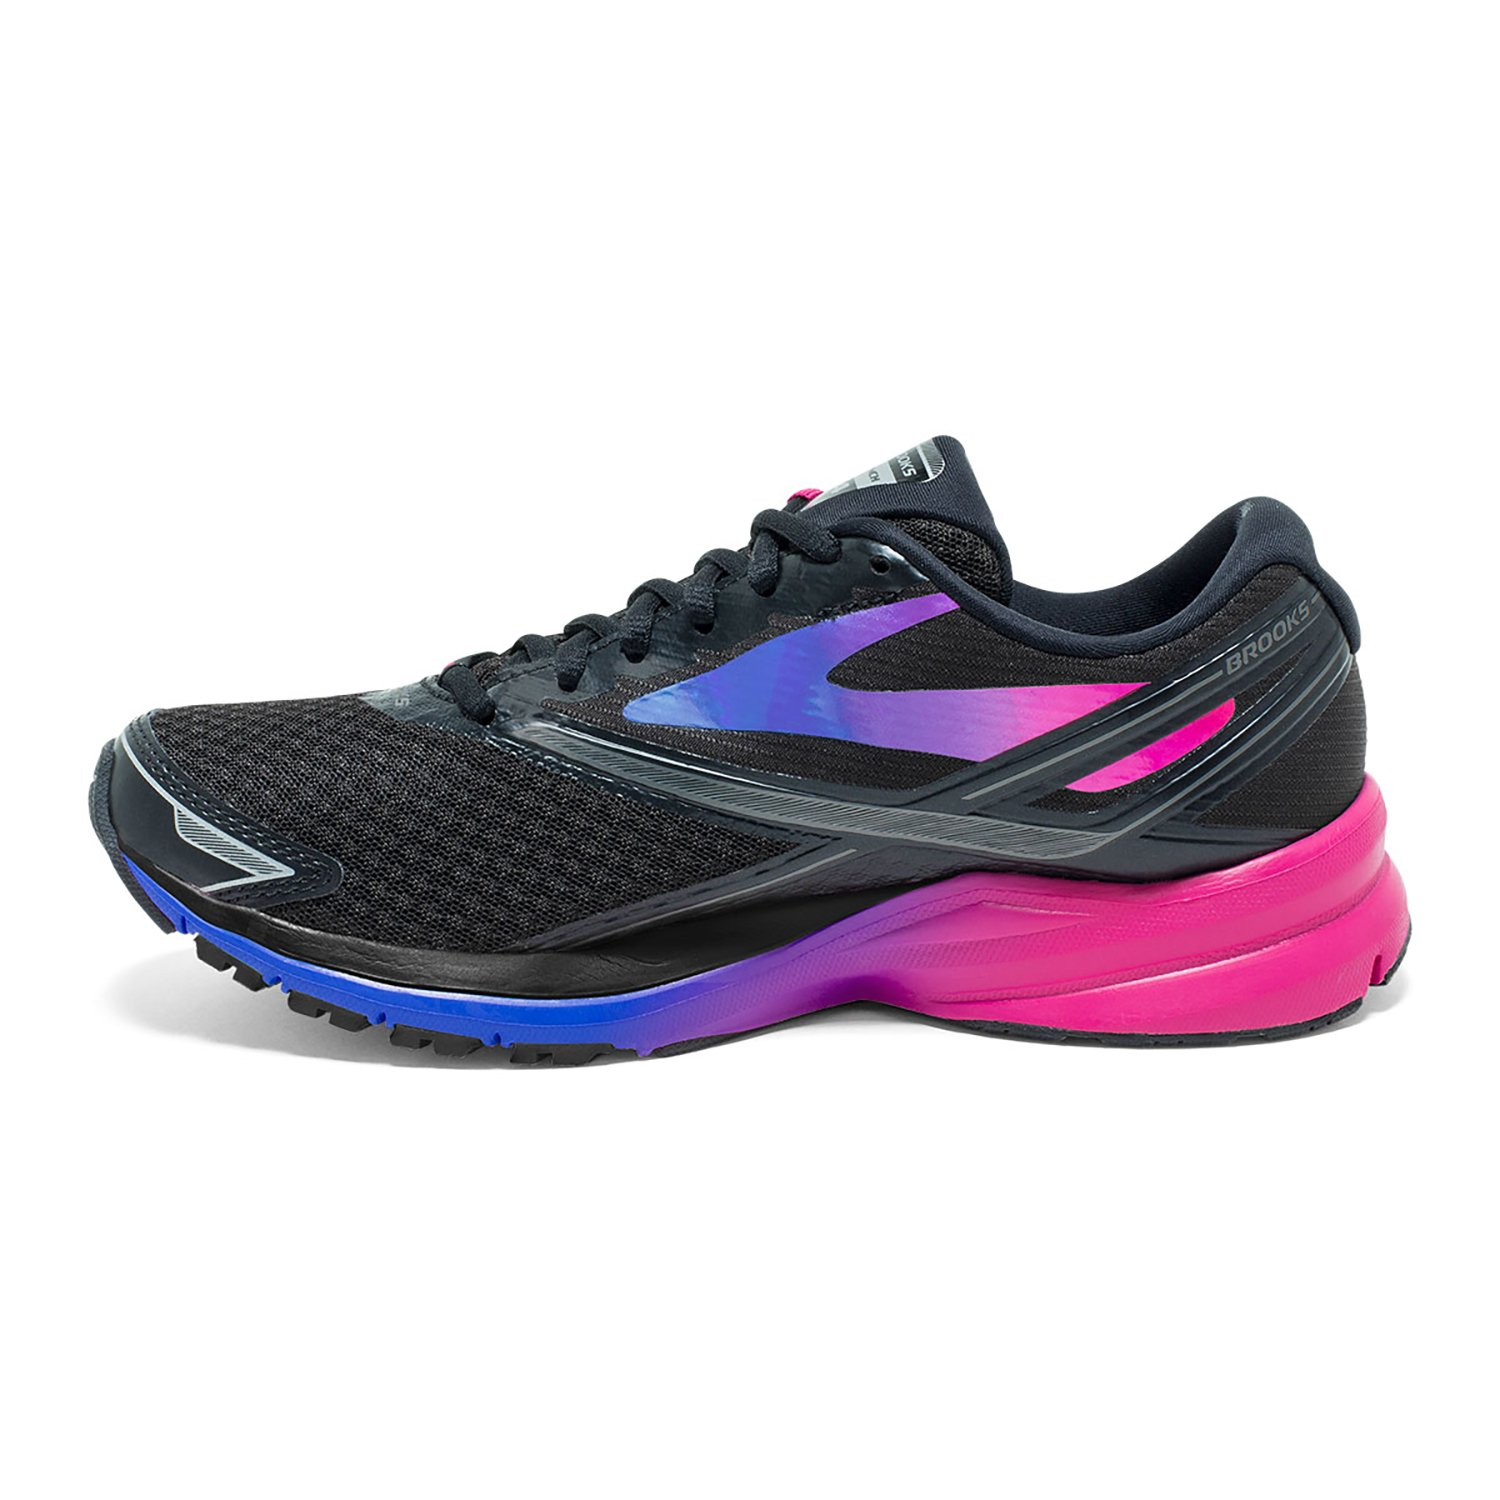 Brooks Womens Launch 4 B01GEZUJEQ 8.5 B(M) US|Black/Fuchsia Purple/Dazzling Blue